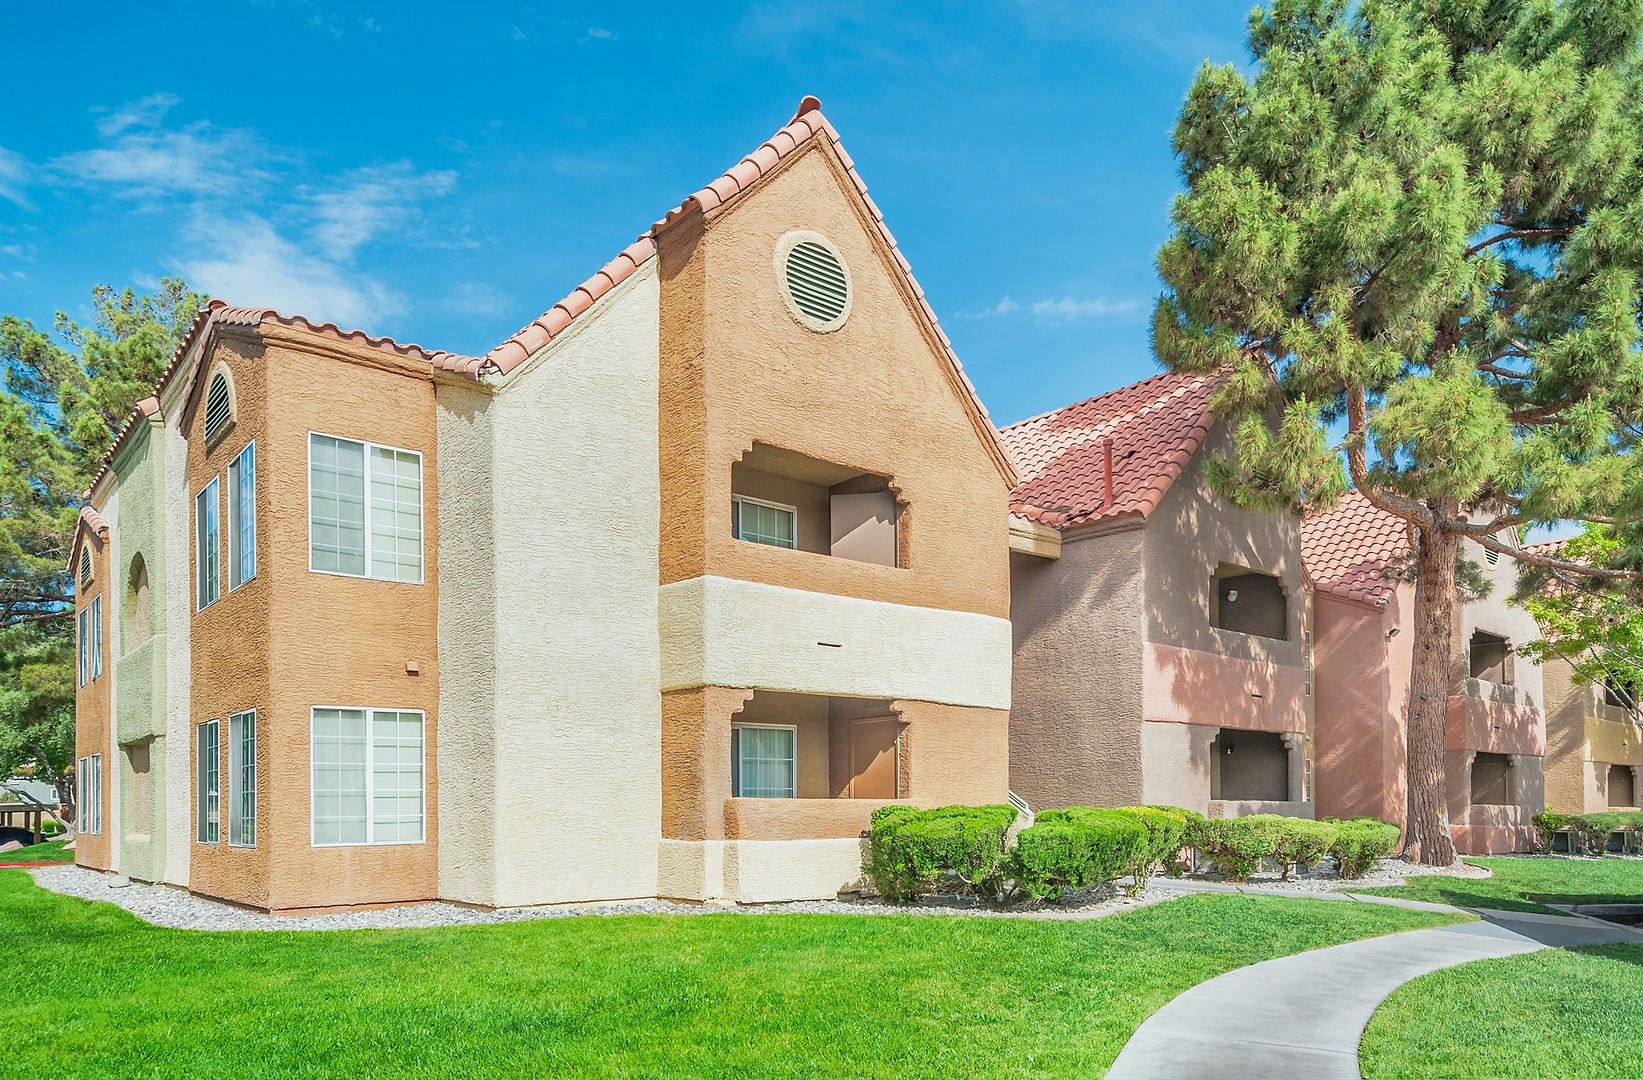 Apartments for Rent in Las Vegas, NV | Eagle Trace - Home